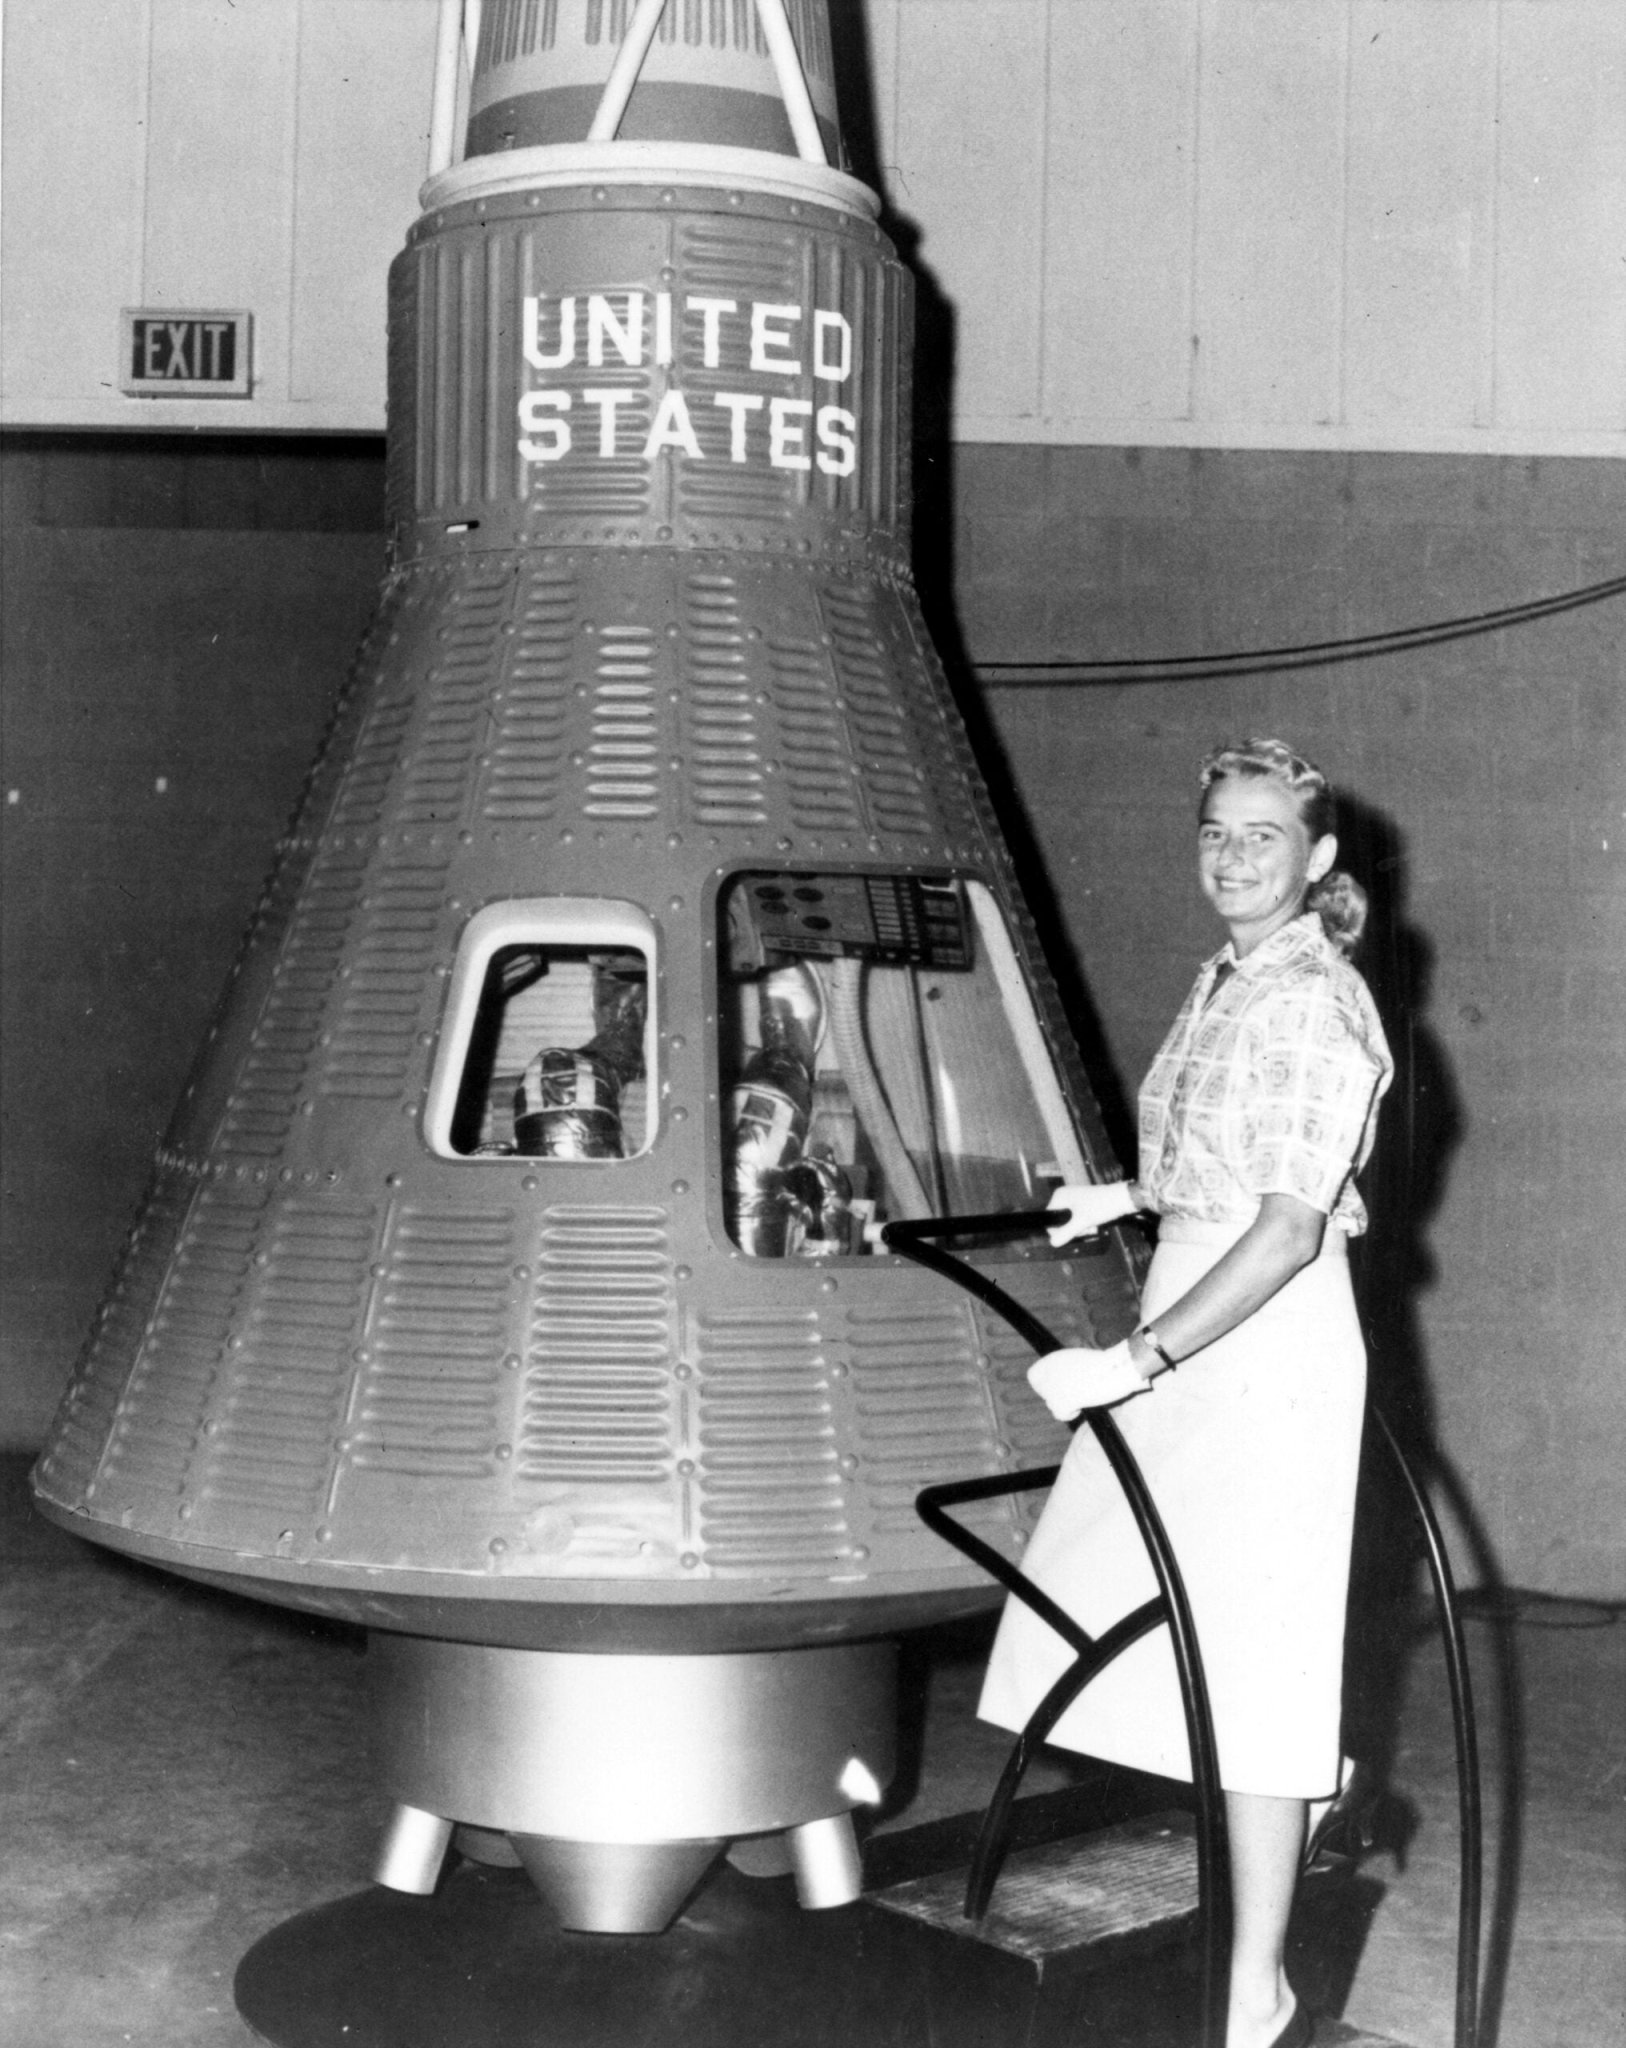 A brief history of menstruating in space